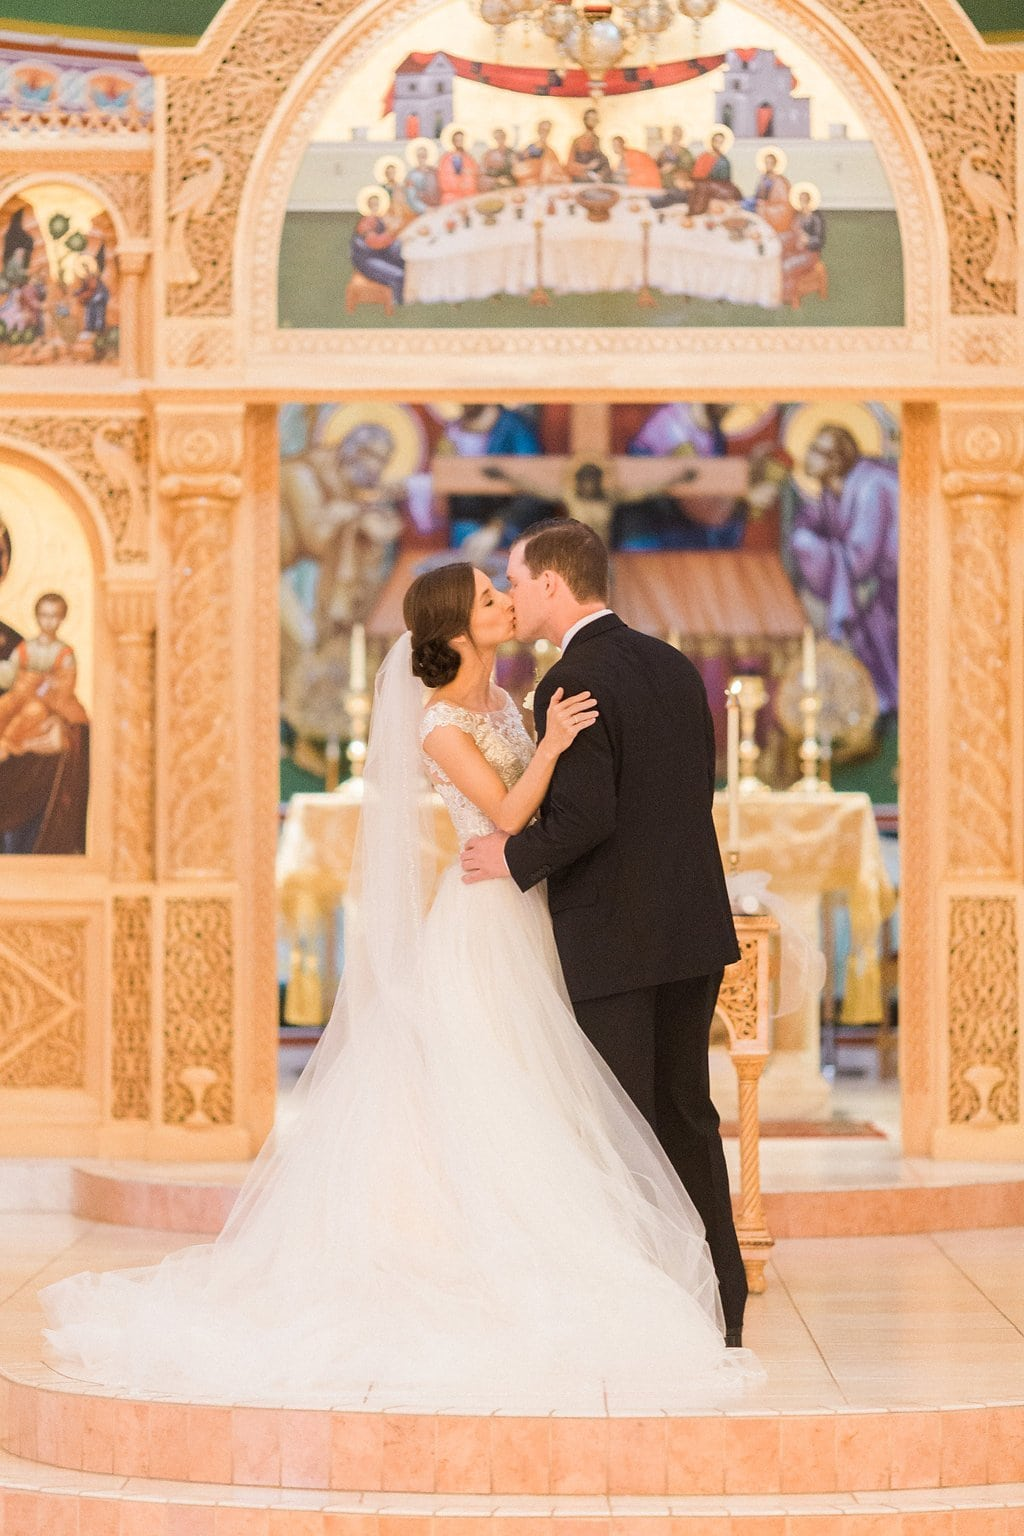 The couple's first kiss at the end of their wedding ceremony at the Greek Church